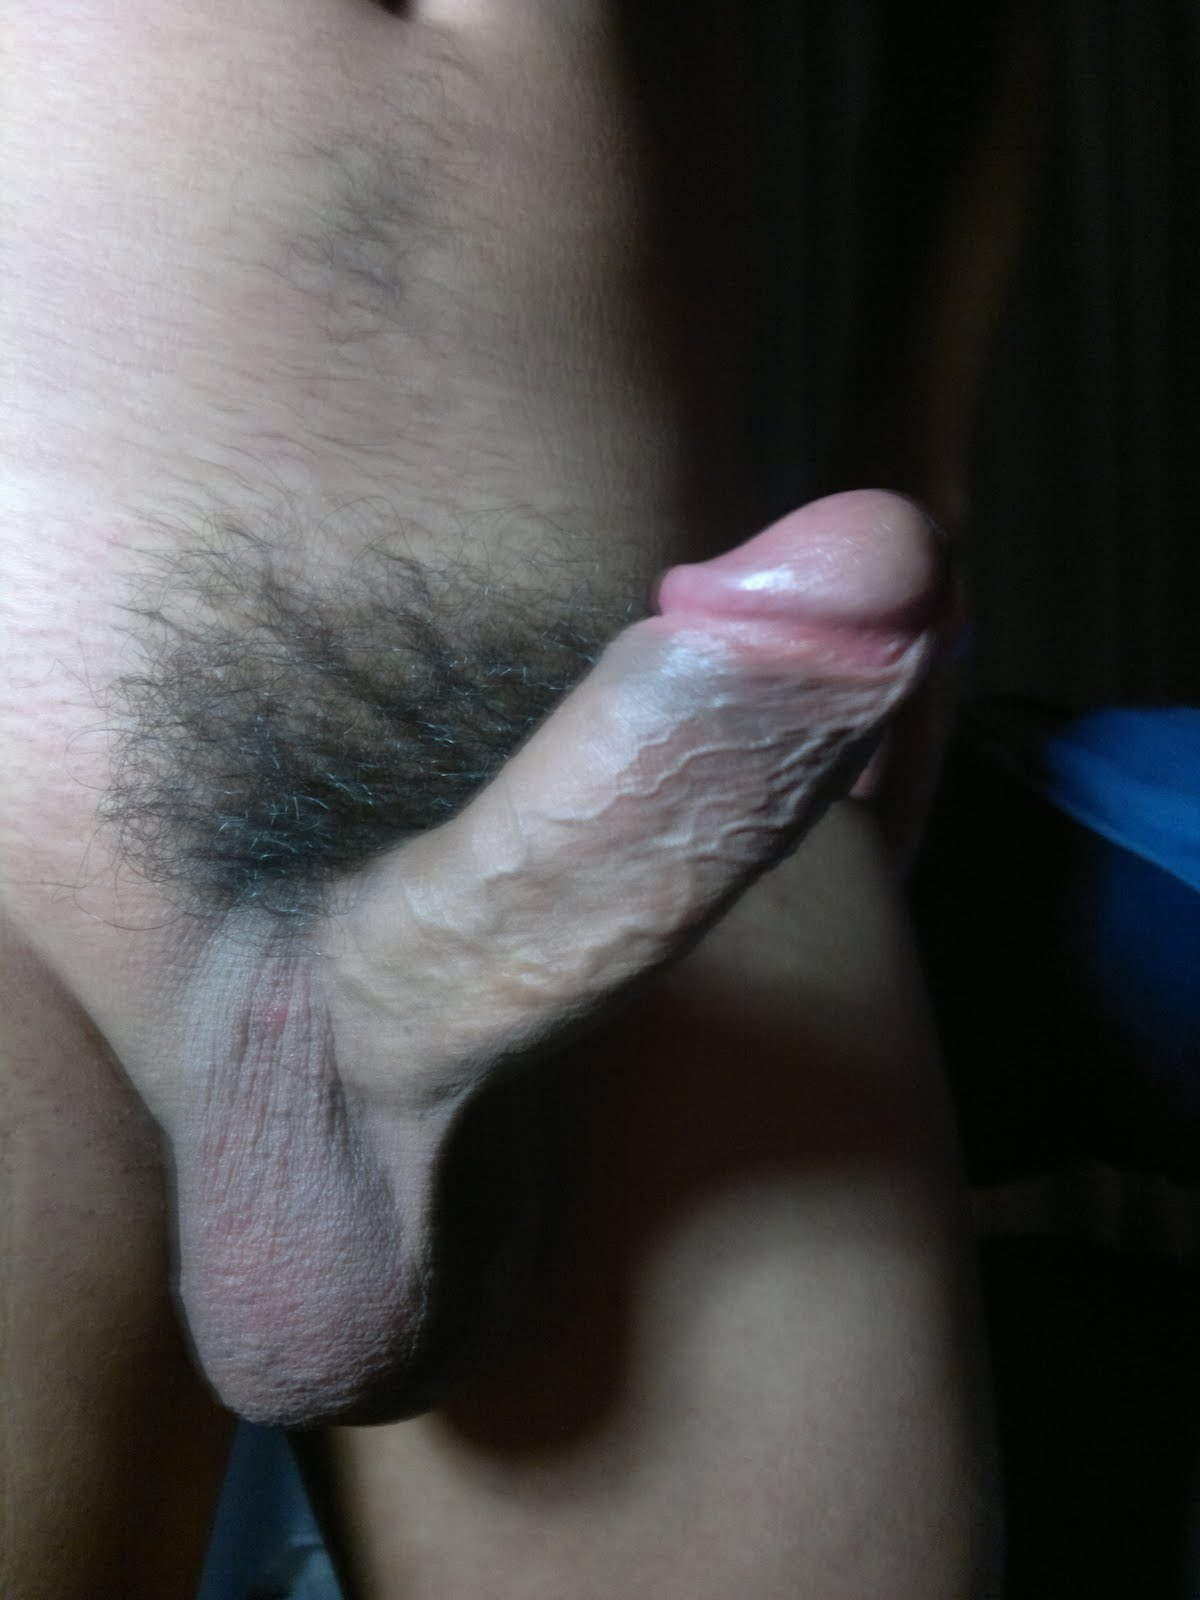 chat free sex site uk